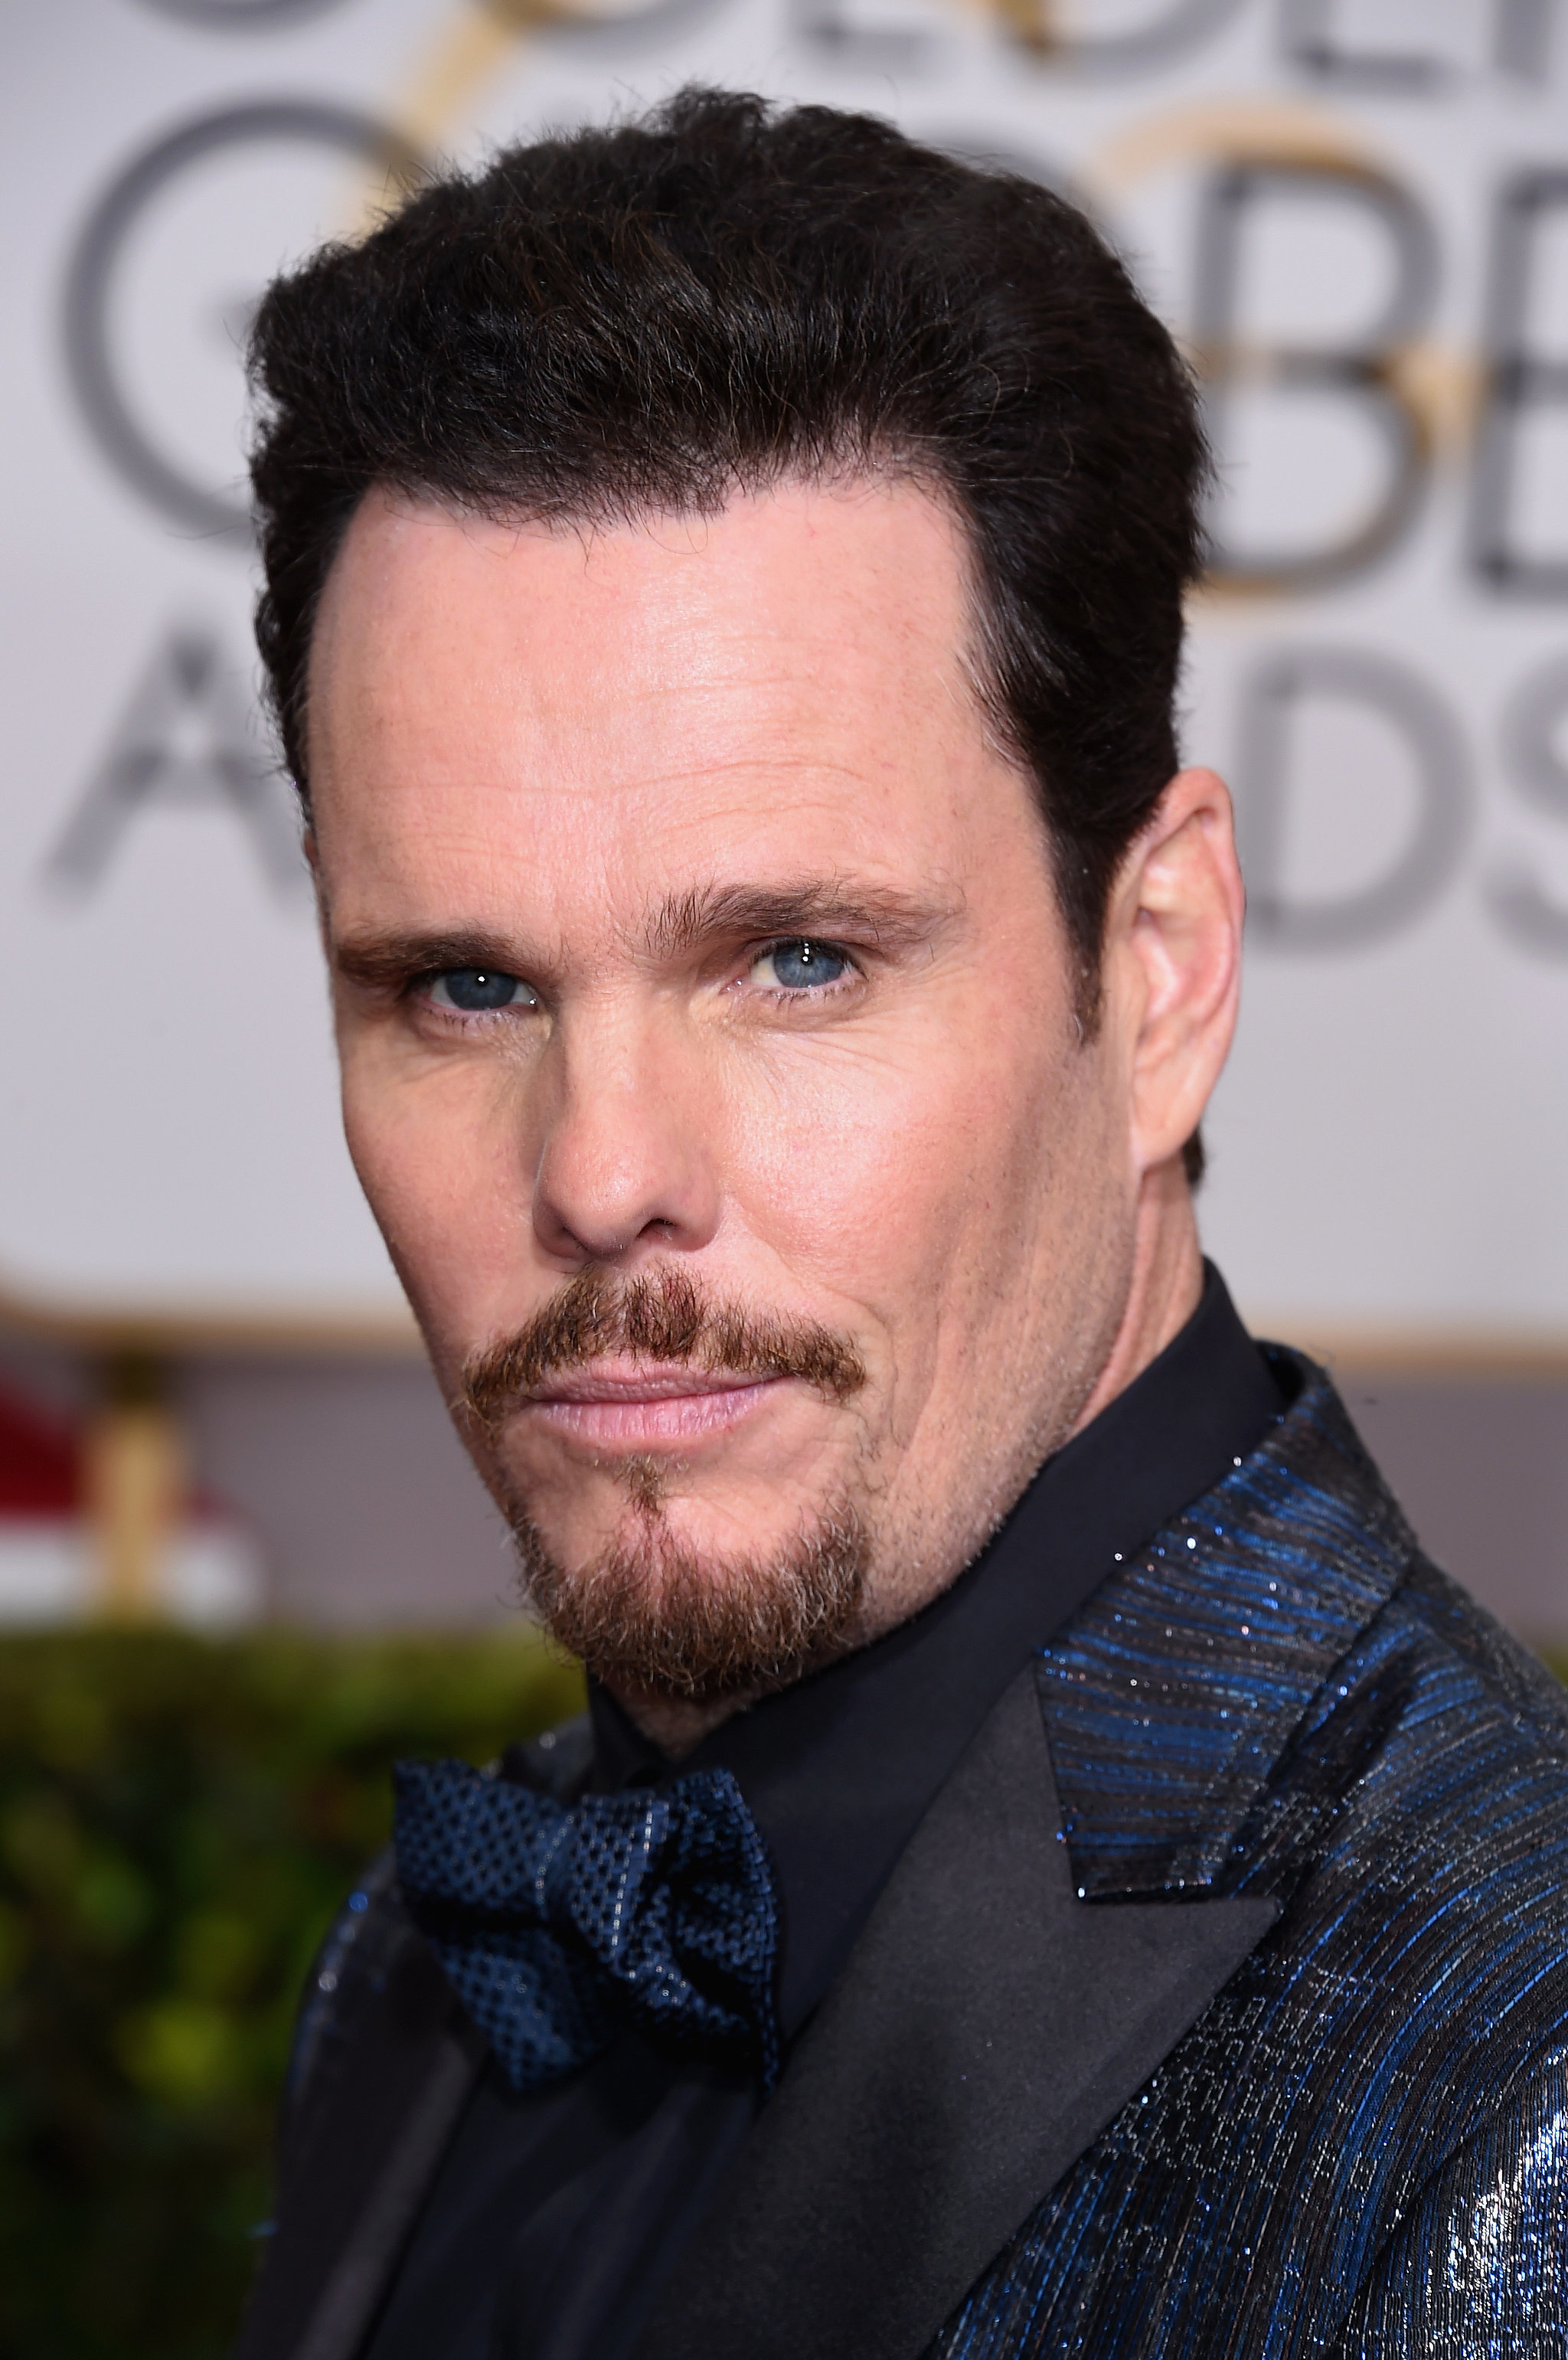 Kevin Dillon earned a  million dollar salary - leaving the net worth at 10 million in 2018